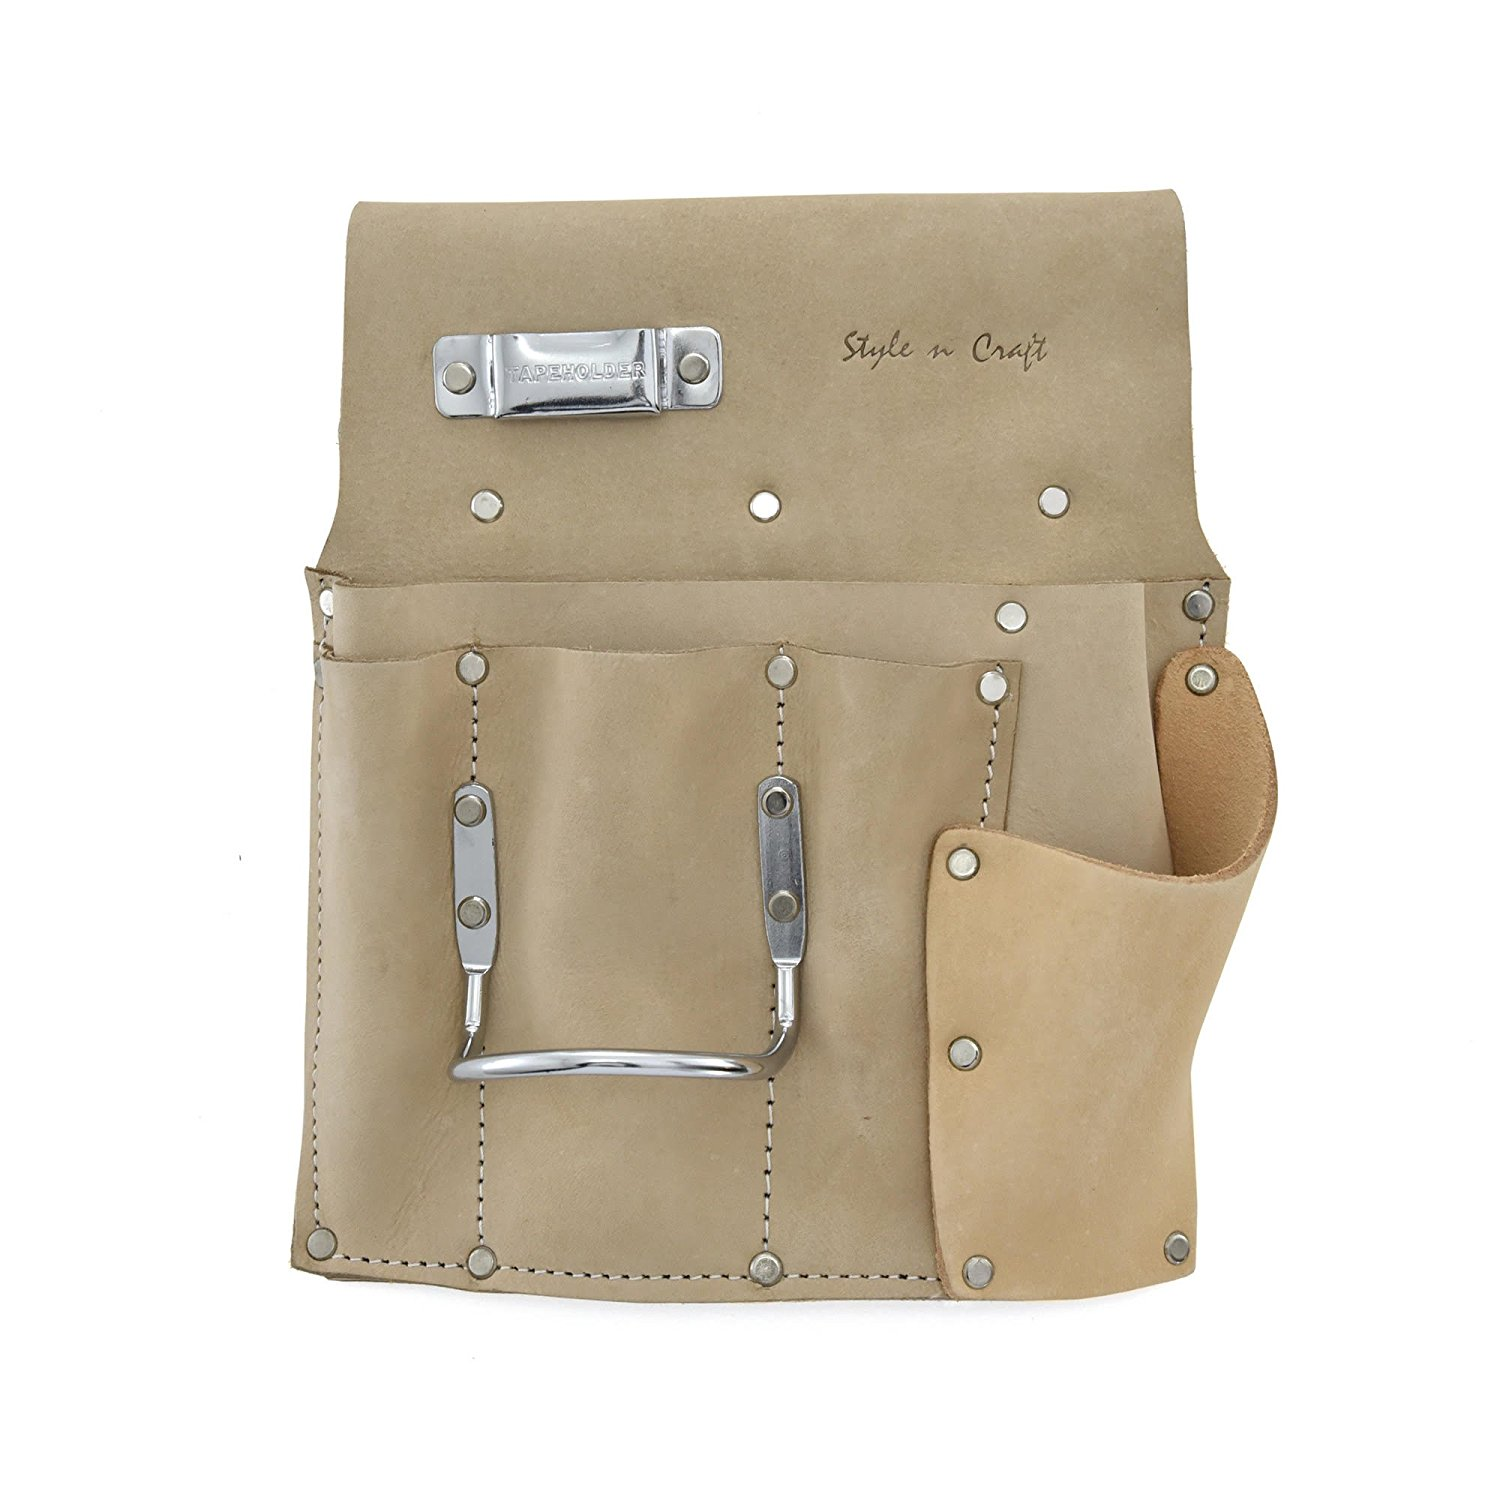 Style n Craft 92-485L 6 Pocket Drywall Hanger's Tool Pouch in Heavy Duty Grey Top Grain Leather for left handers